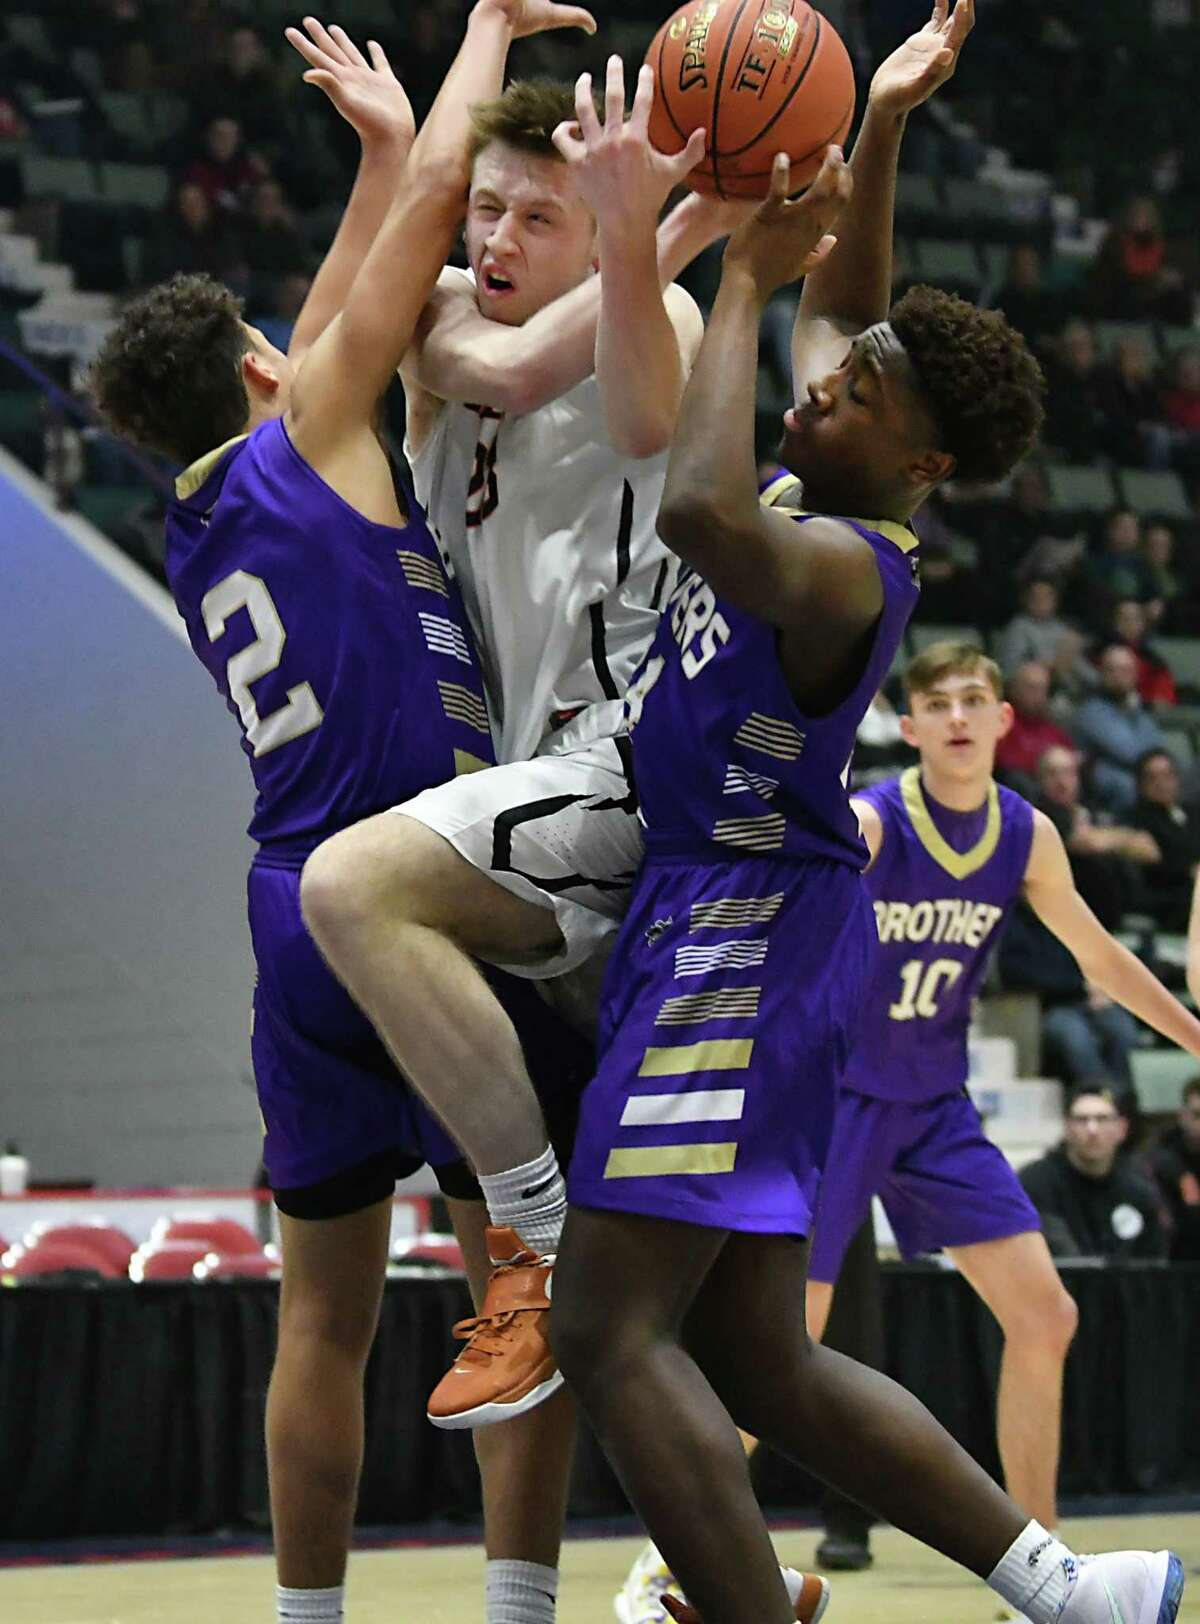 Bethlehem's Jake Laclair drives to the basket against Christian Brothers Academy during a Class Class AA basketball semifinal game at the Cool Insuring Arena on Tuesday, Feb. 26, 2019 in Glens Falls, N.Y. (Lori Van Buren/Times Union)